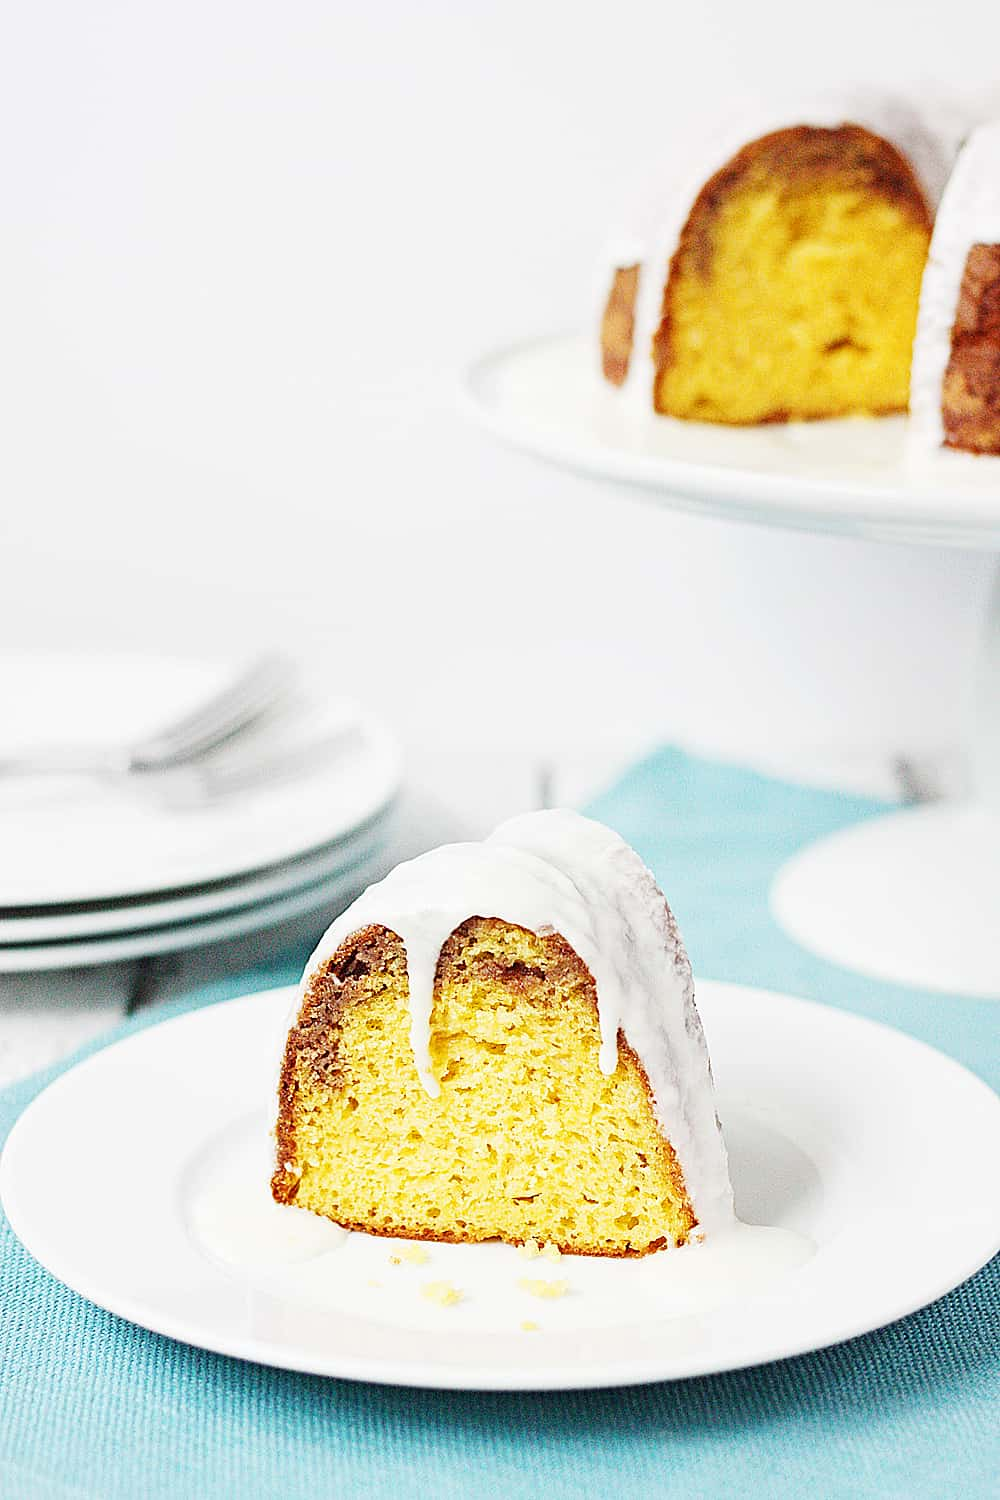 Slice of cake mix coffee cake bundt cake with full cake in the background